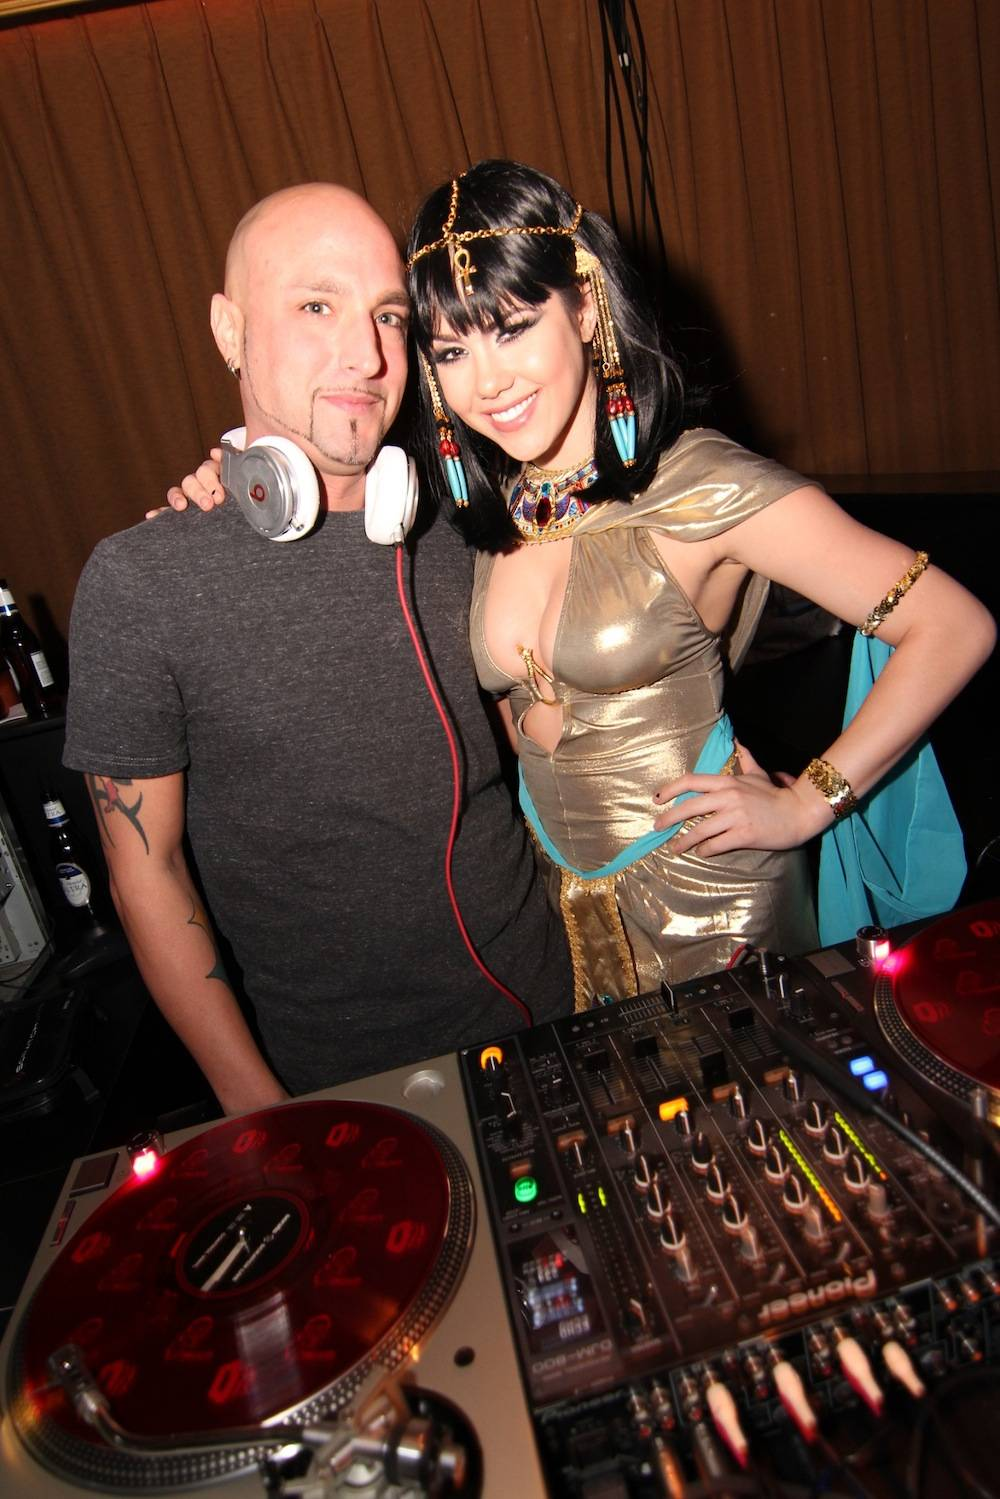 DJ MYK and Claire Sinclair at Posh